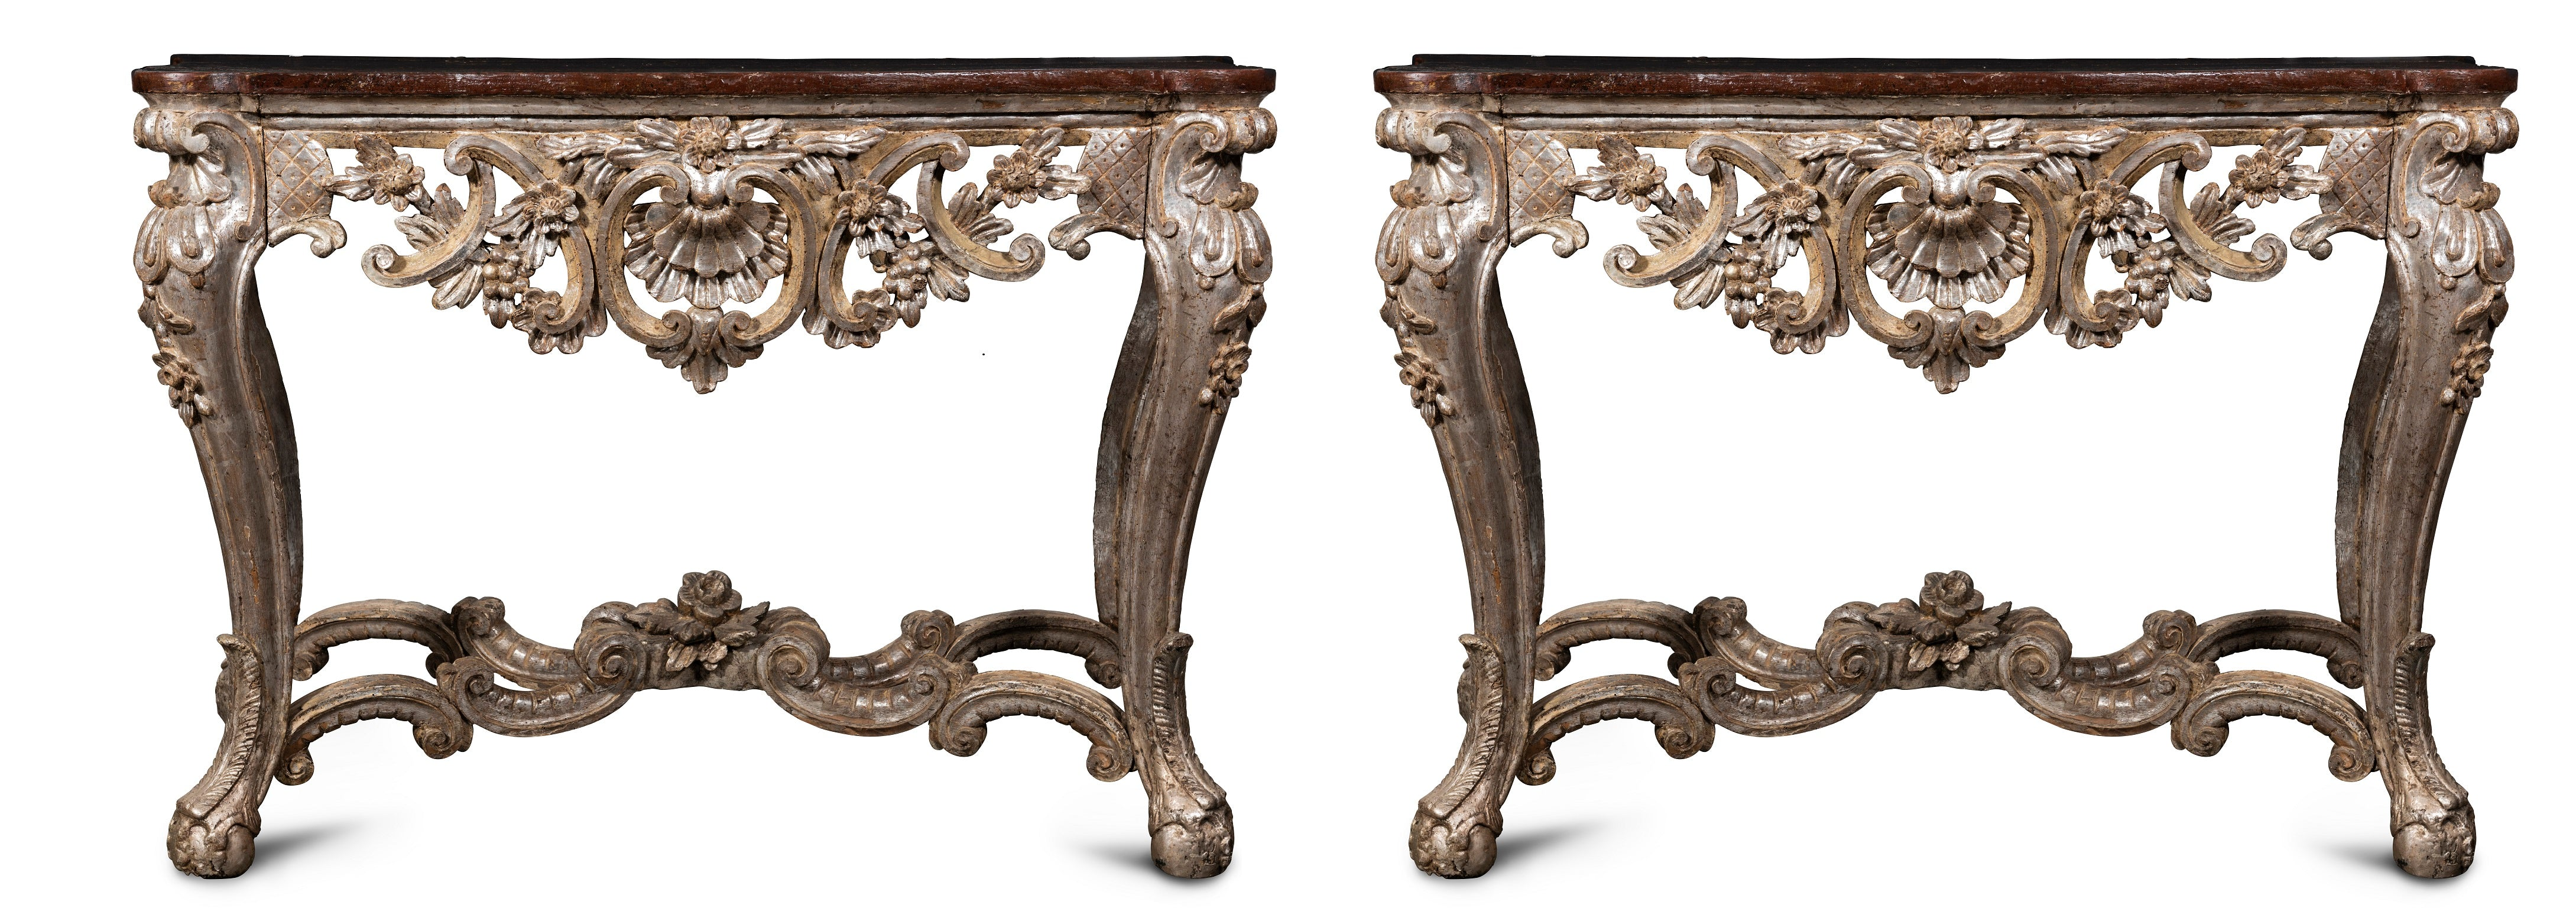 Pair of Late 18th Century Italian Ecclesiastical Silver-Gilt Consoles